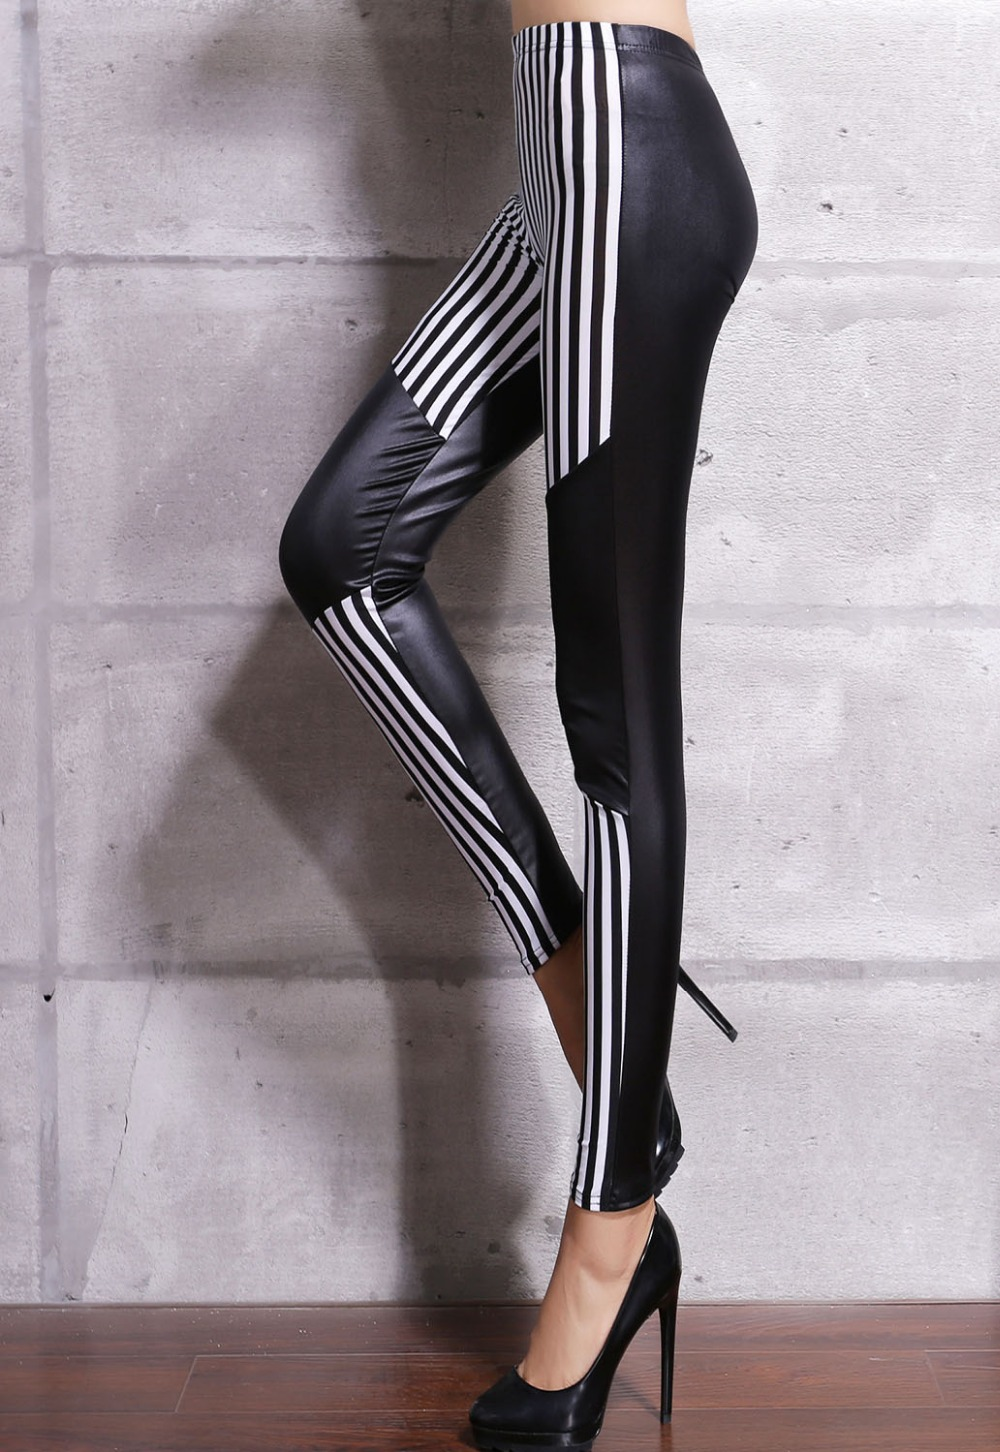 Beauty online 2015 New Fashion High Street  Women Seamless Pantyhose  Black White Stripes Patchwork Leatherette Leggings LC79763Одежда и ак�е��уары<br><br><br>Aliexpress